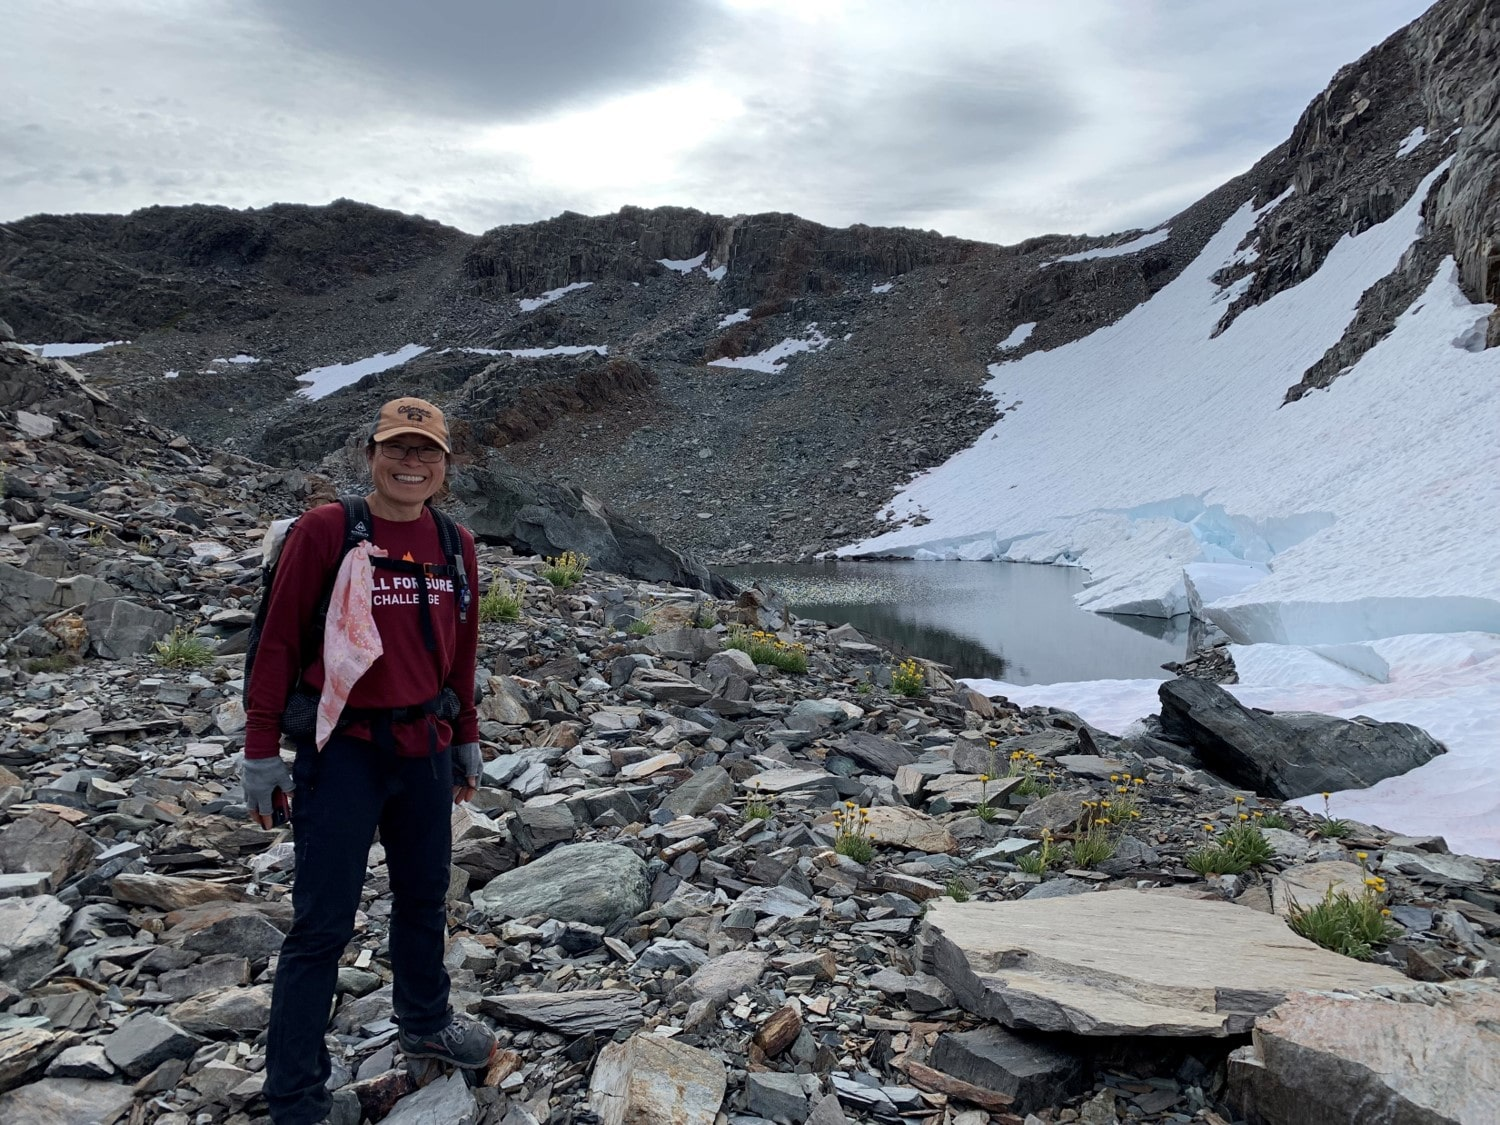 2019 - Mt. Goddard, September hike with breaking glacier in view